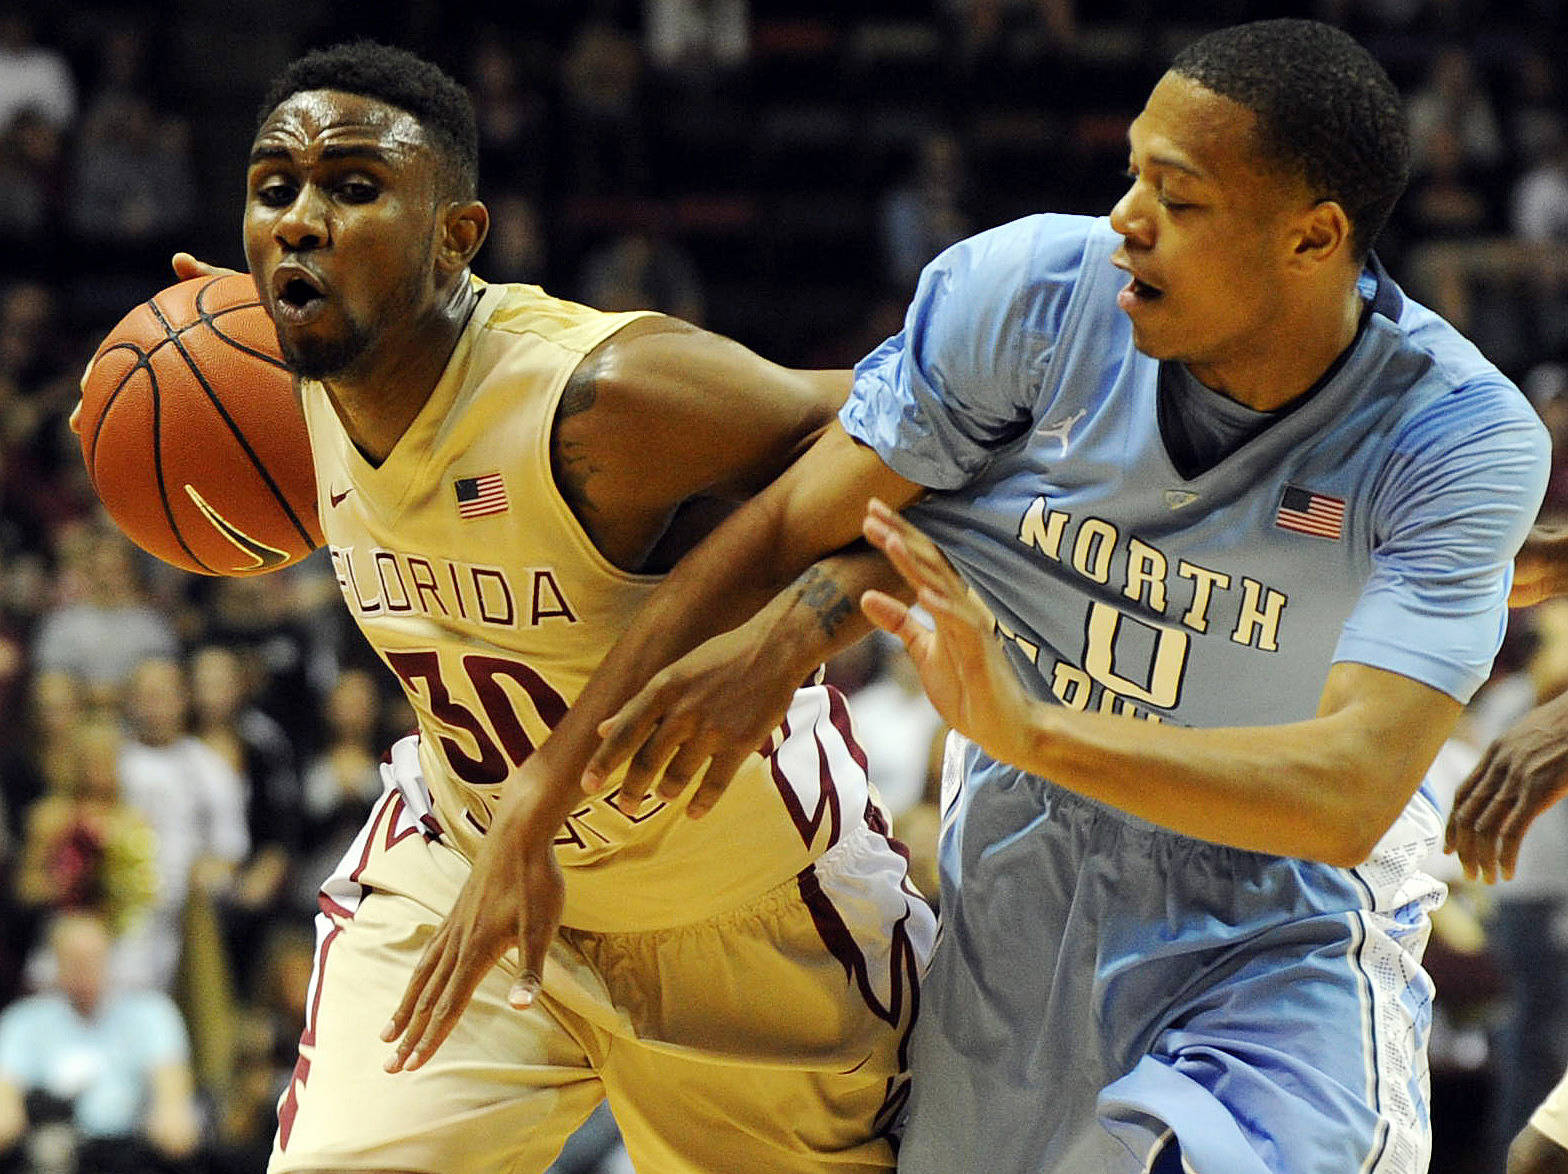 Florida State Seminoles guard Ian Miller (30) is fouled by Nate Britt (0). (Melina Vastola-USA TODAY Sports)